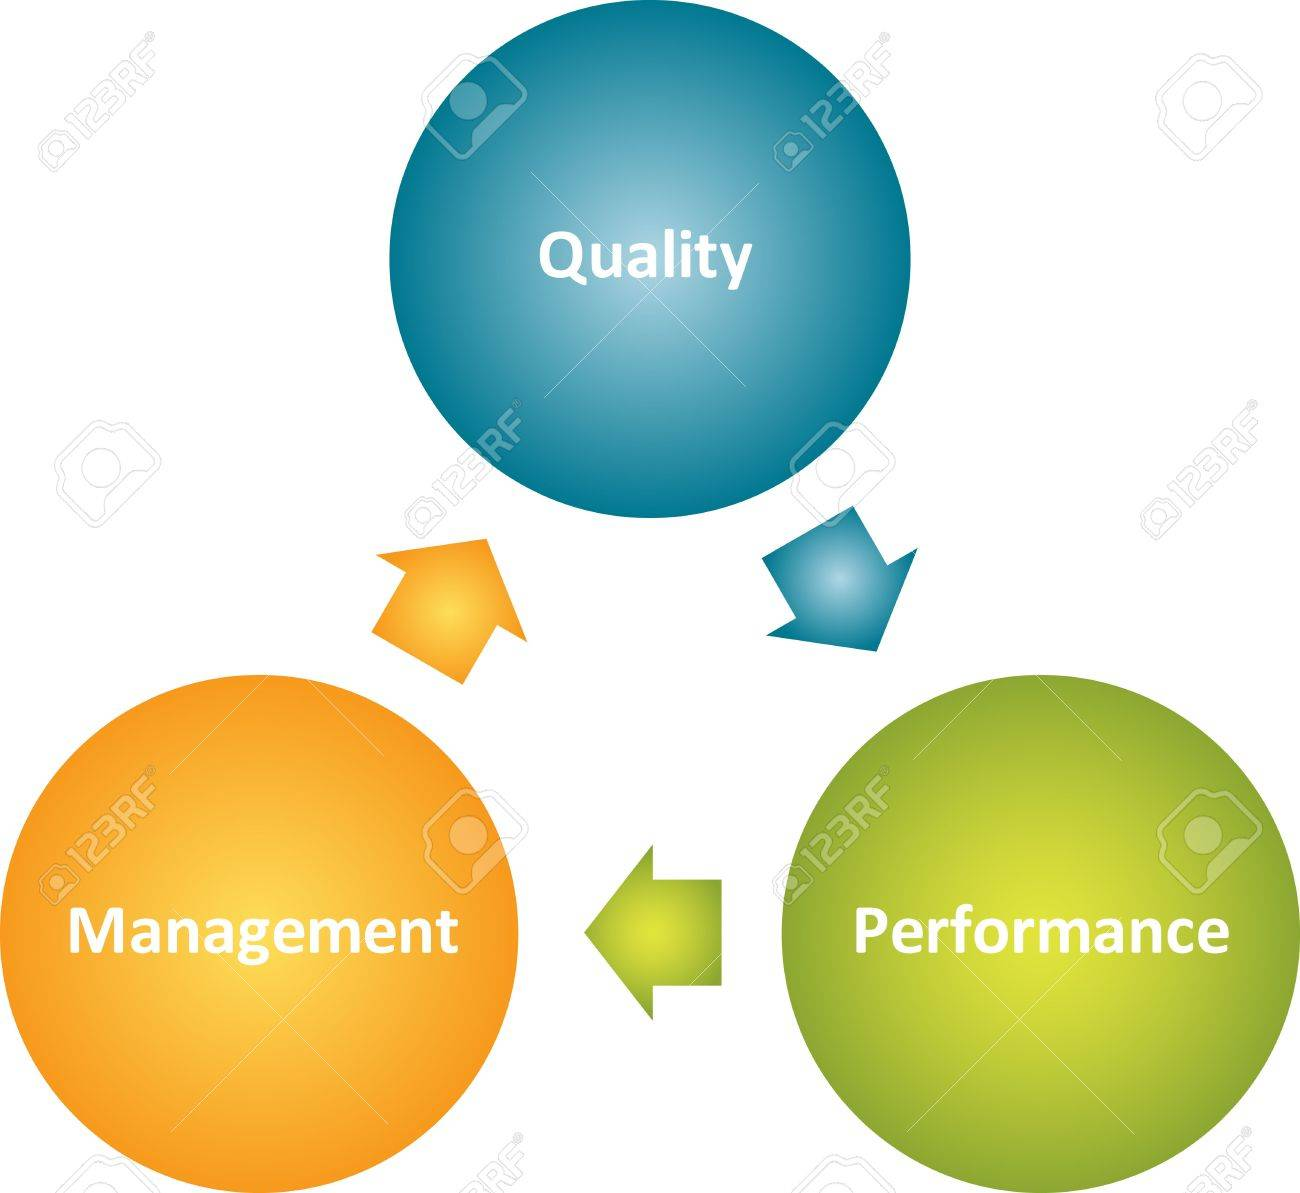 continuous improvement tool stock illustrations  cliparts and    continuous improvement tool  quality management improvement cycle business strategy concept diagram